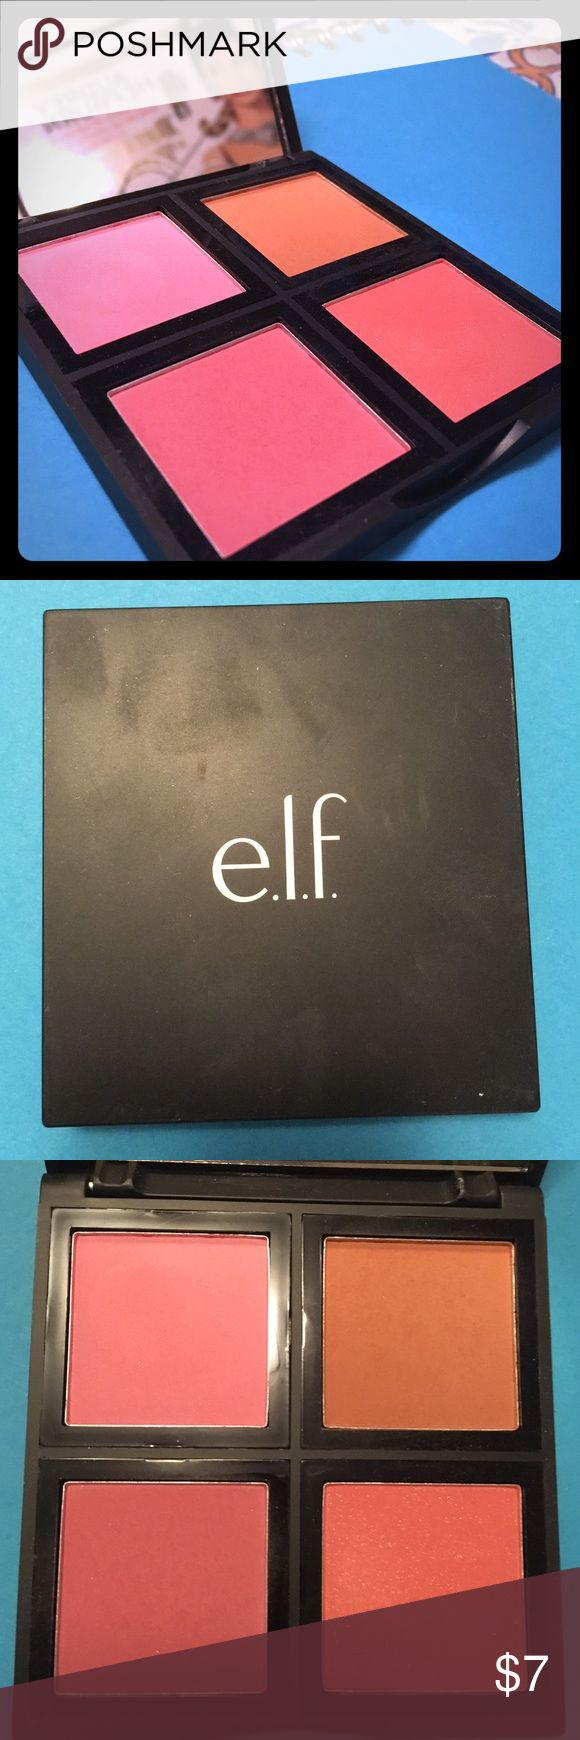 ELF Blush Palette in Light The famous ELF blush palette in Light! One of my all time favorite blushes! These are very pigmented and nearly rival Tarte's blushes in pigmentation. Two colors swatched and the other ones are untouched. Great blush palette for a great price! ELF Makeup Blush